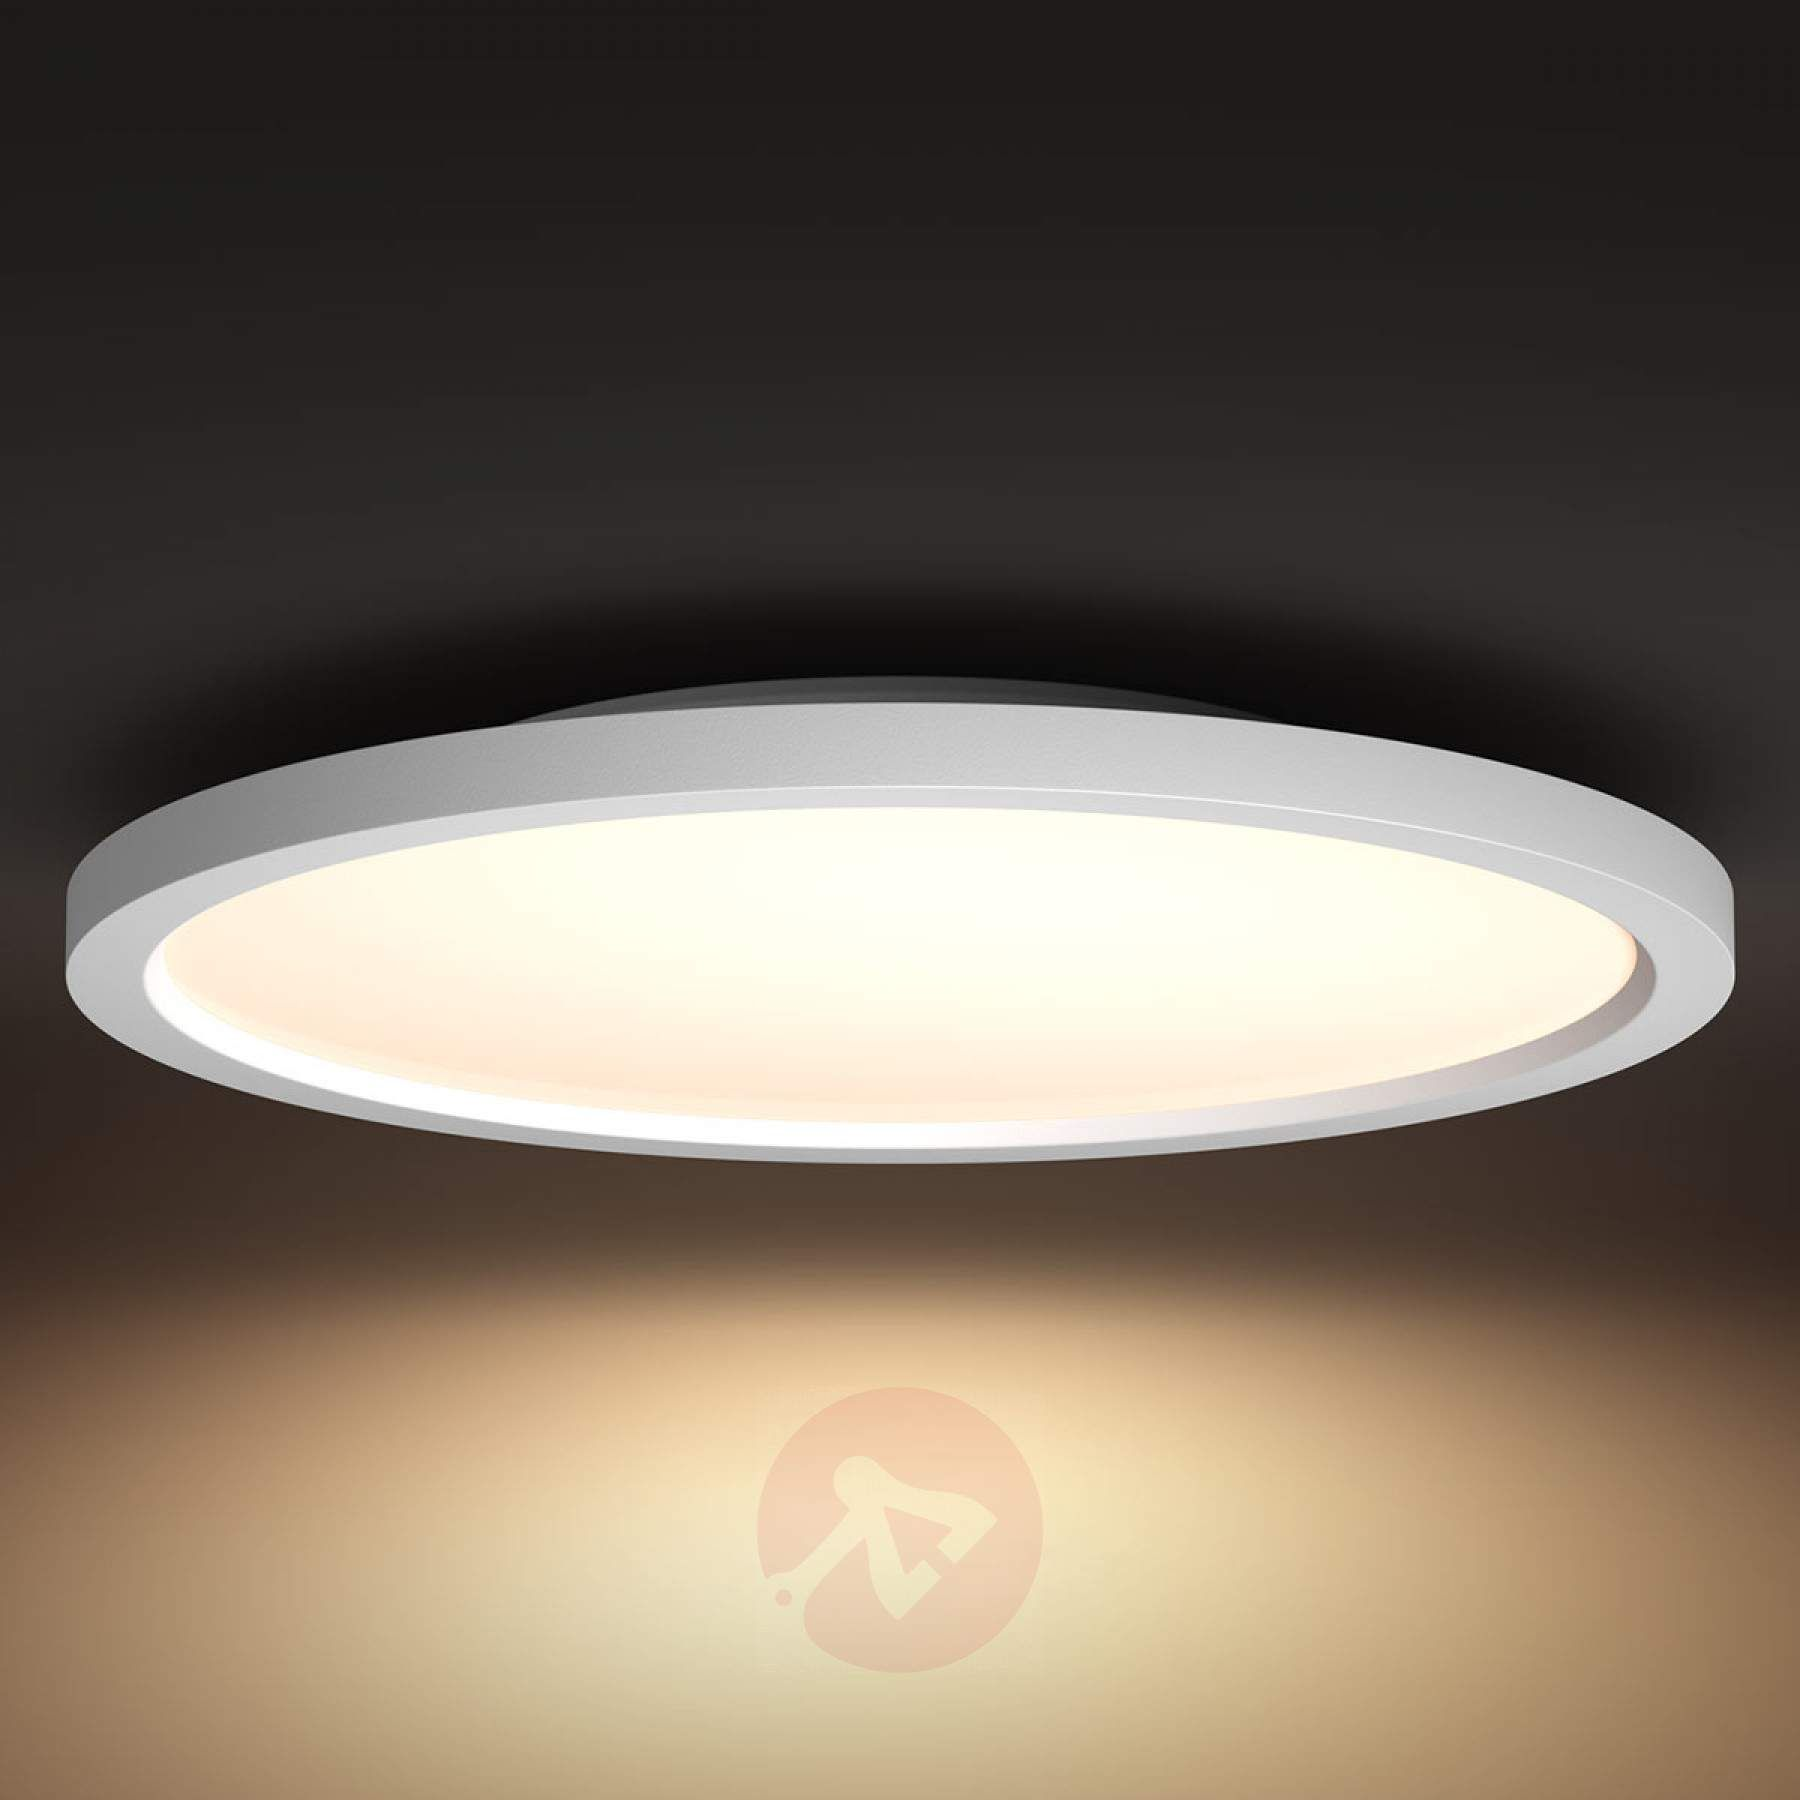 Philips Hue White Ambiance Aurelle Led Panel Rund In 2020 Led Panel Rund Led Panel Led